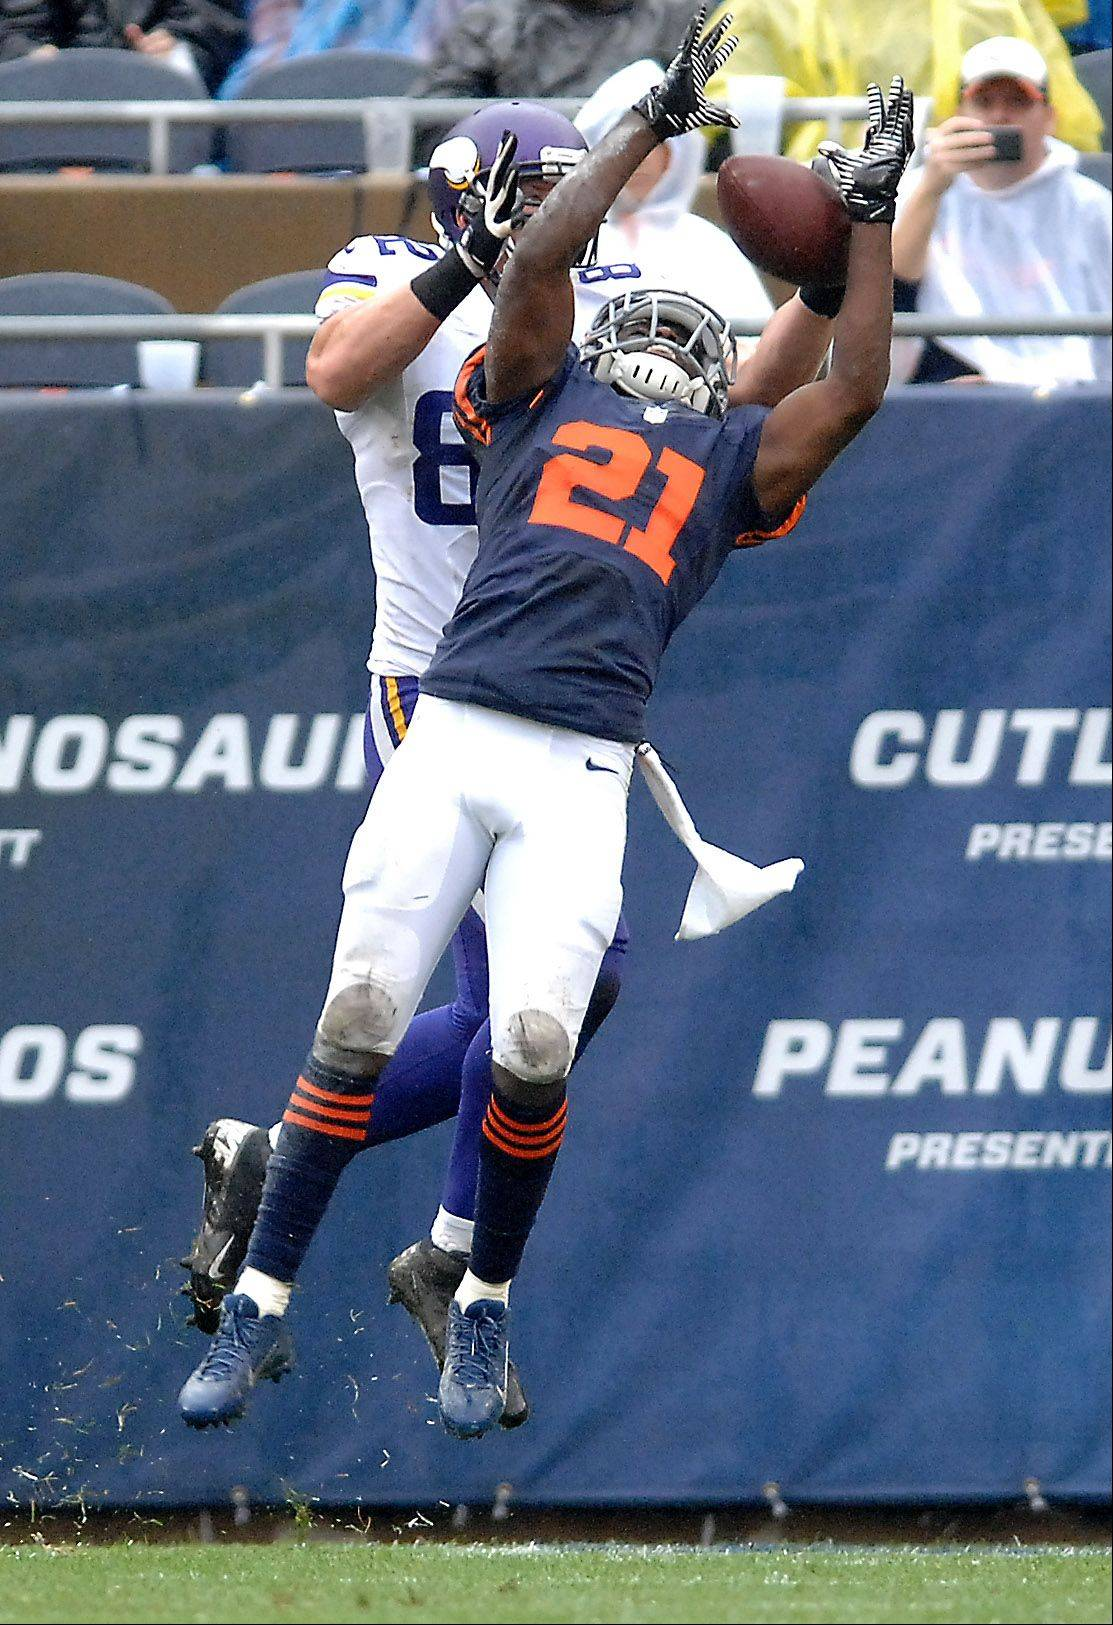 Chicago Bears strong safety Major Wright (21) defends but can't stop Minnesota Vikings tight end Kyle Rudolph (82) from making a touchdown grab in the second quarter during Sunday's game at Soldier Field in Chicago.